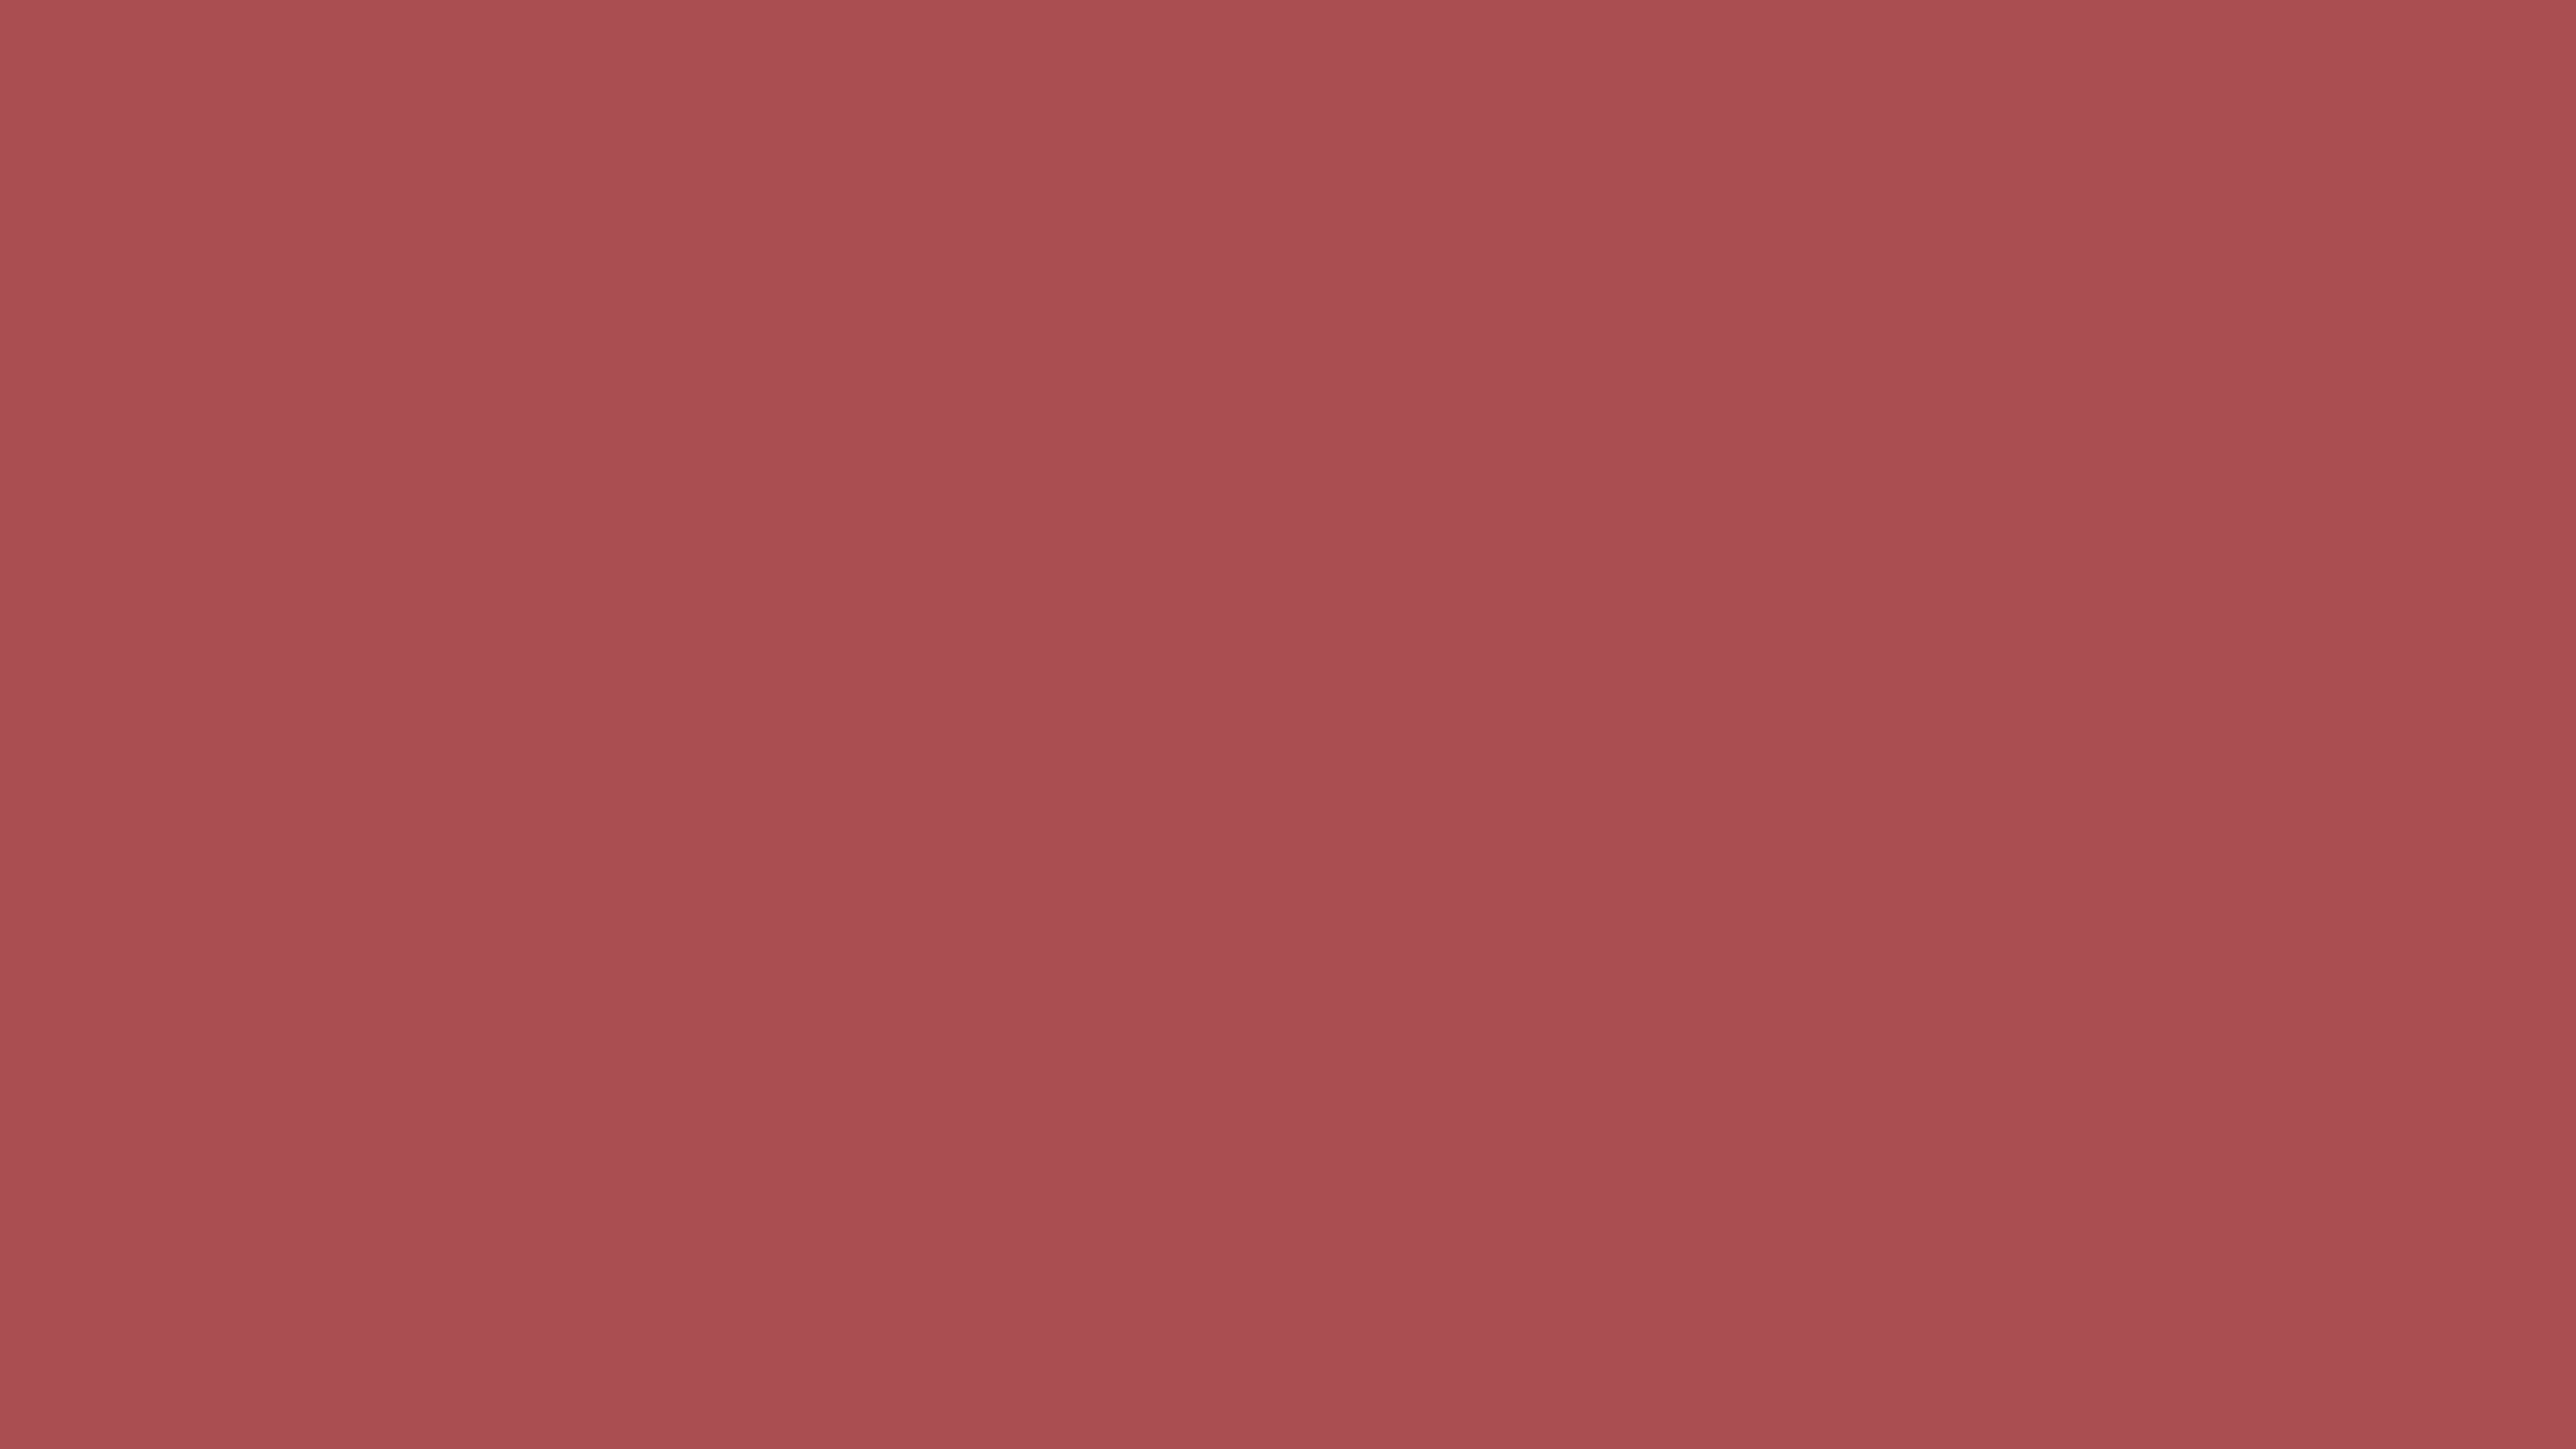 4096x2304 Rose Vale Solid Color Background